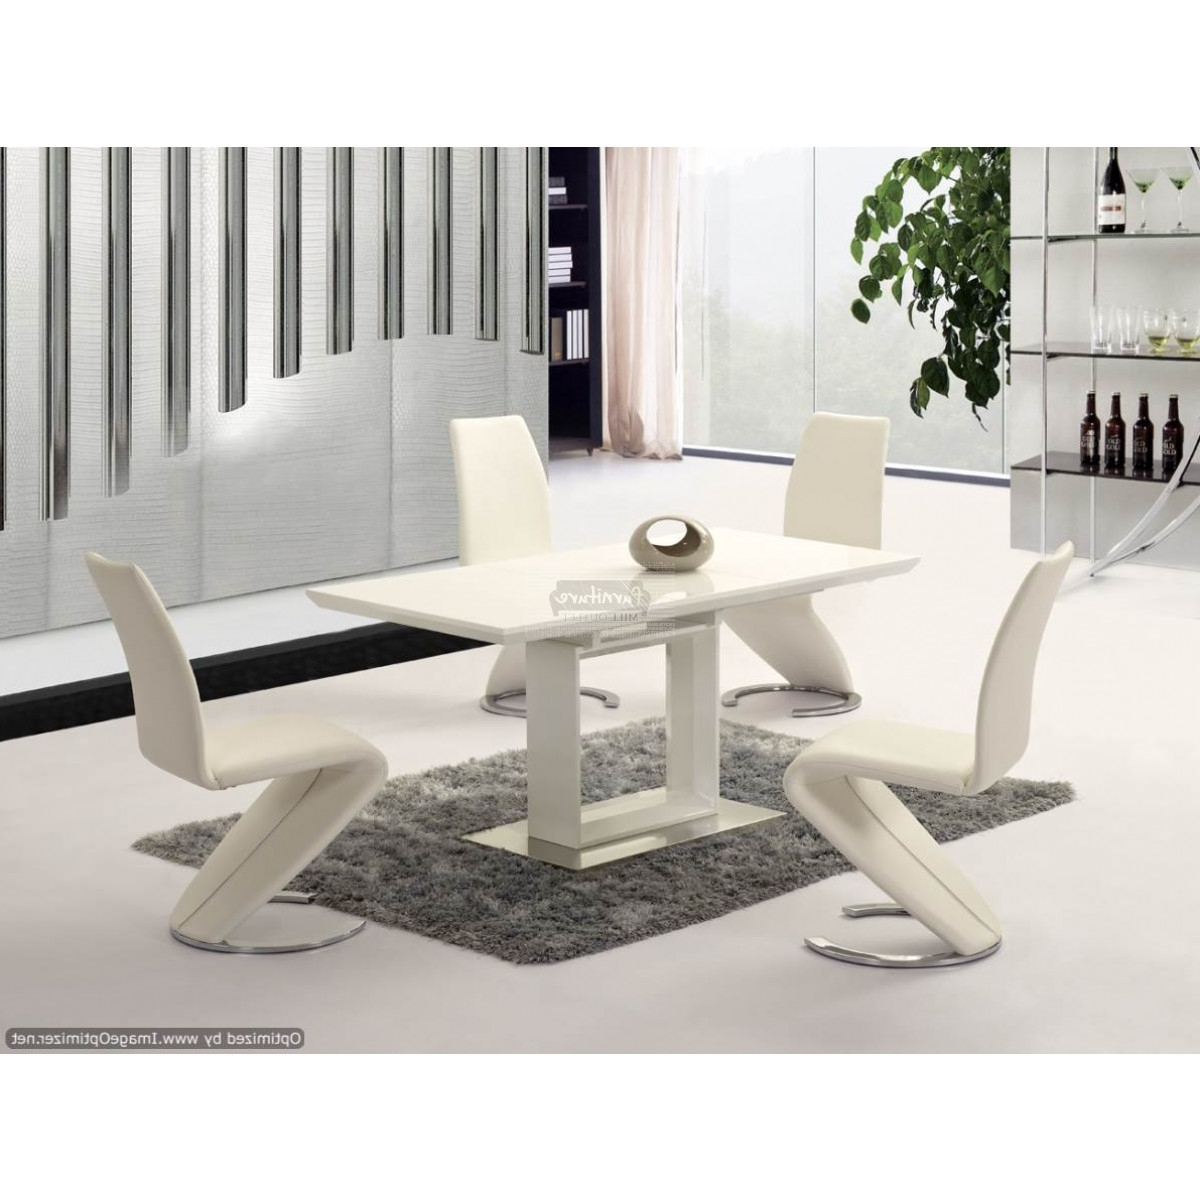 Best And Newest High Gloss Extending Dining Tables Intended For Space White High Gloss Extending Dining Table – 120Cm To 160Cm (Gallery 7 of 25)